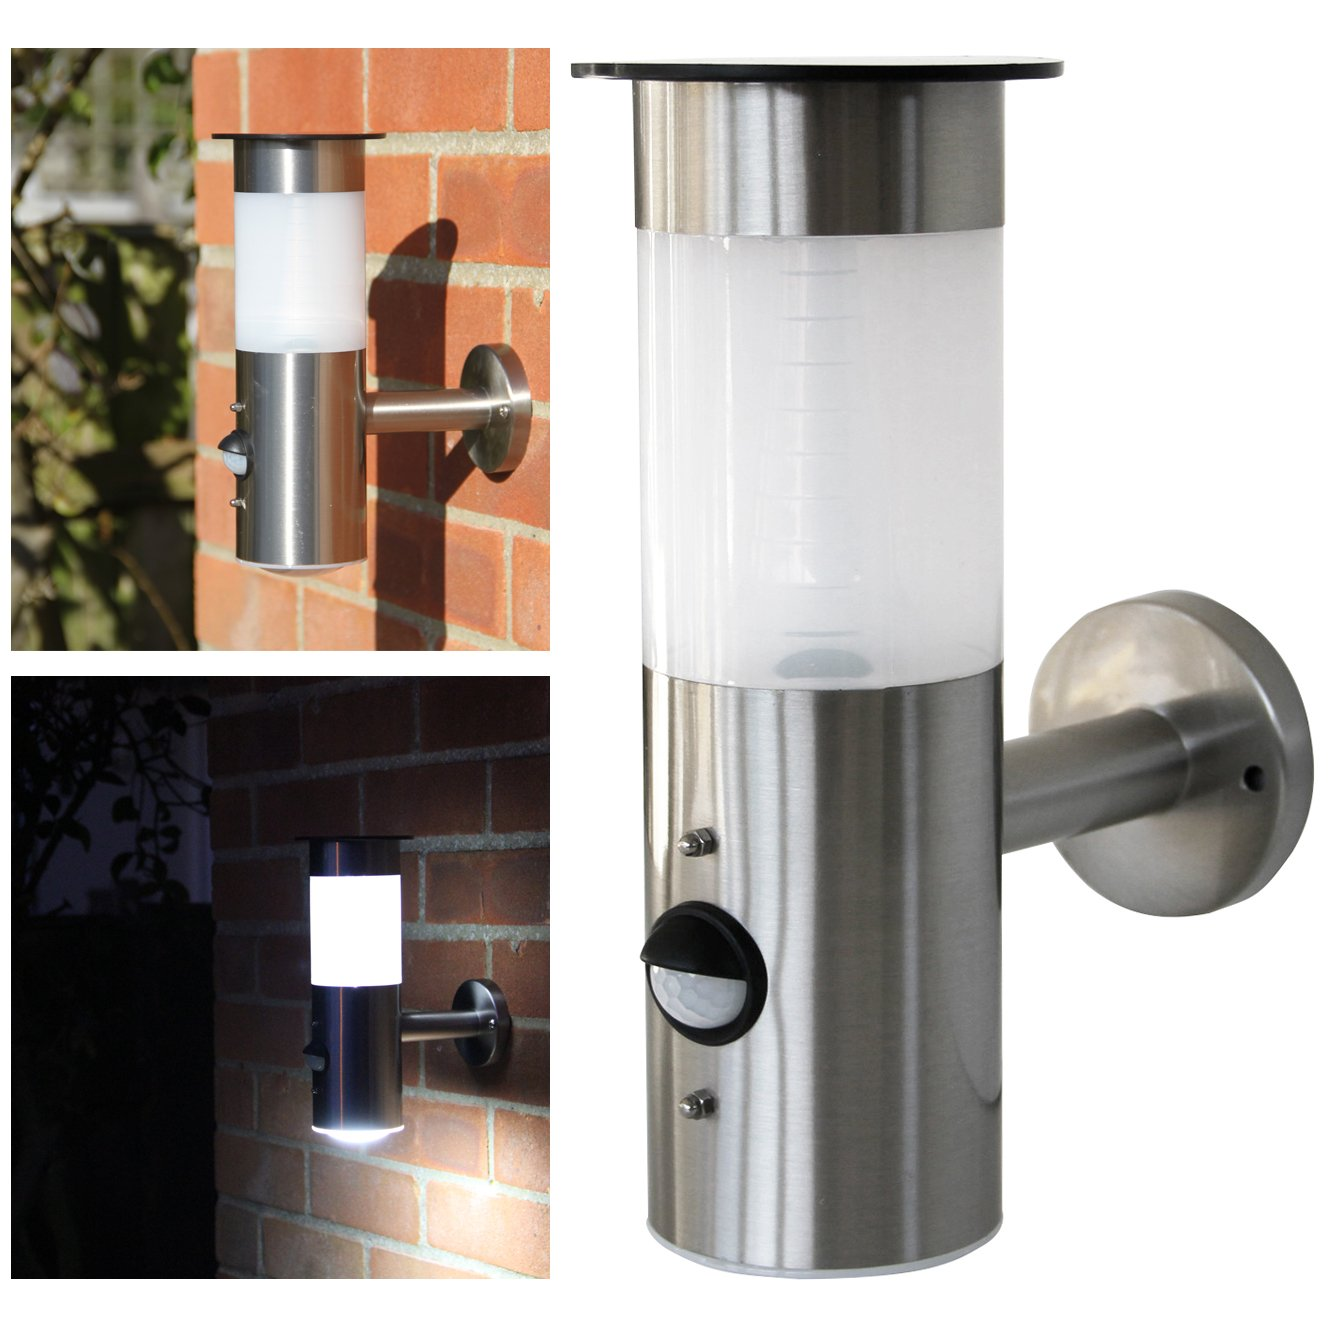 Wall Light Pir Sensor : Frostfire Solar Wall Light with PIR Motion Sensor eBay